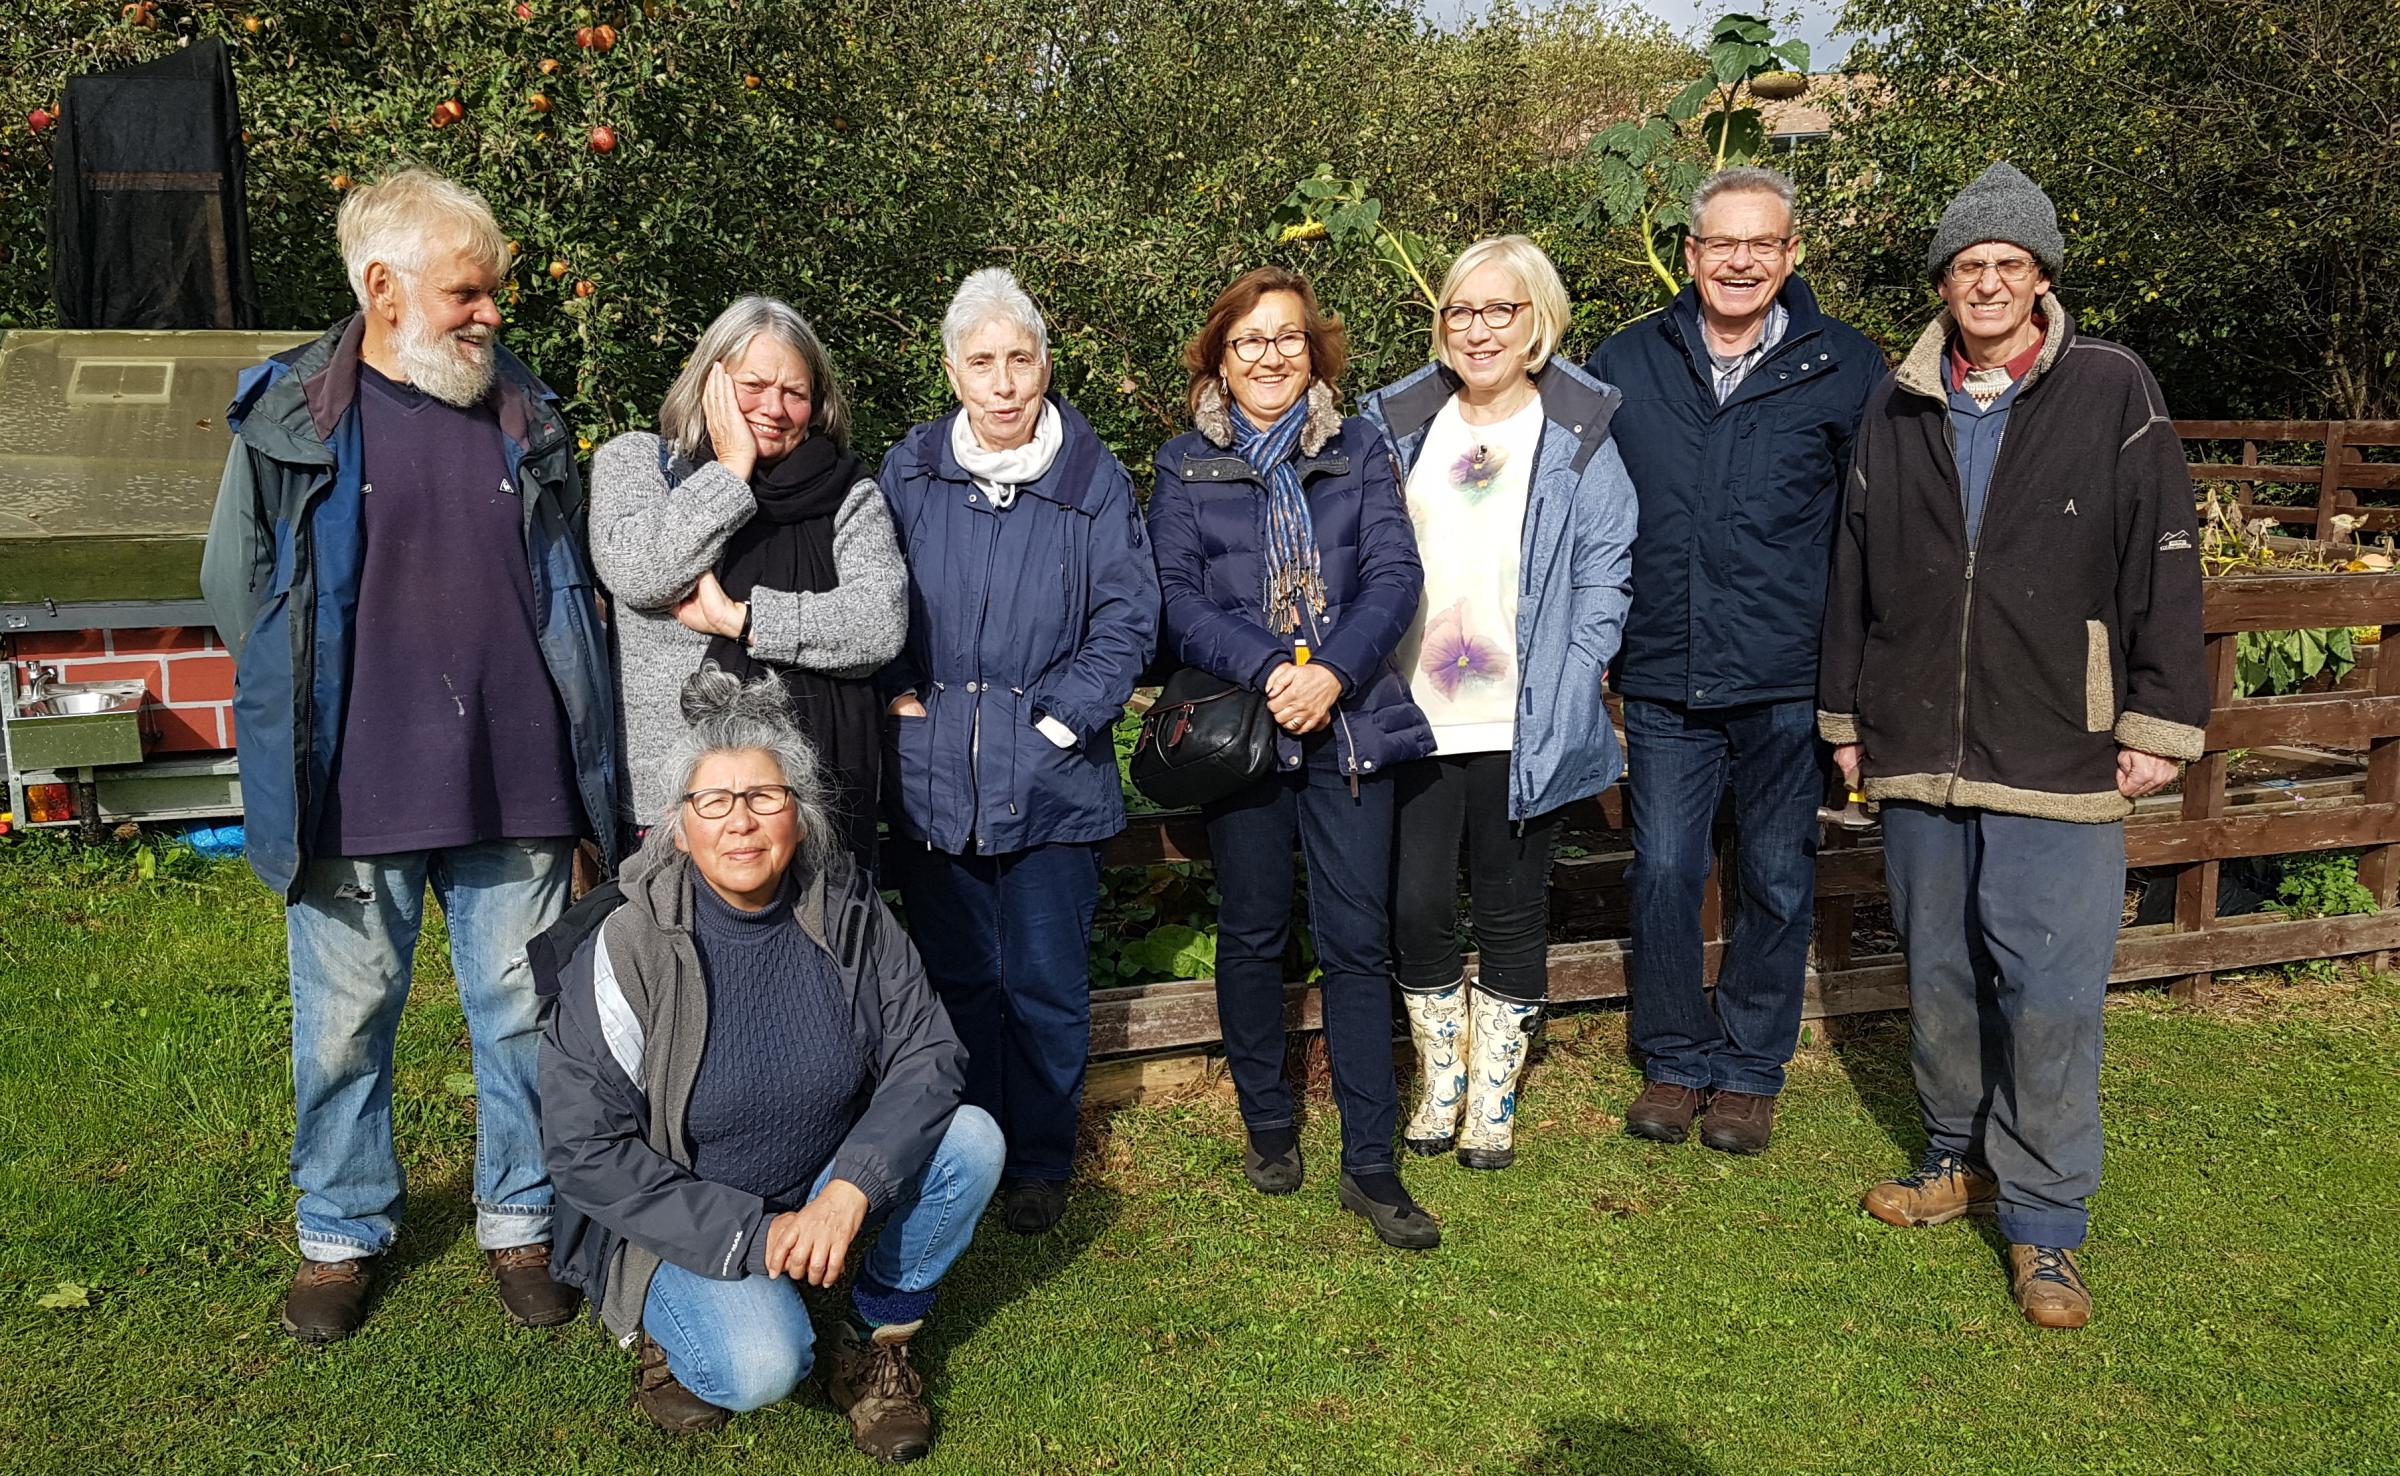 FOLLOWING THE PLOT: Members of the new Glen Allotments Association (from left): John Harper, Nora Godfrey, Efro Tooms, Celina Gee, Jane Nicholson, Les Gee, Steve Mansfield and kneeling, Mariela Munoz Del Valley